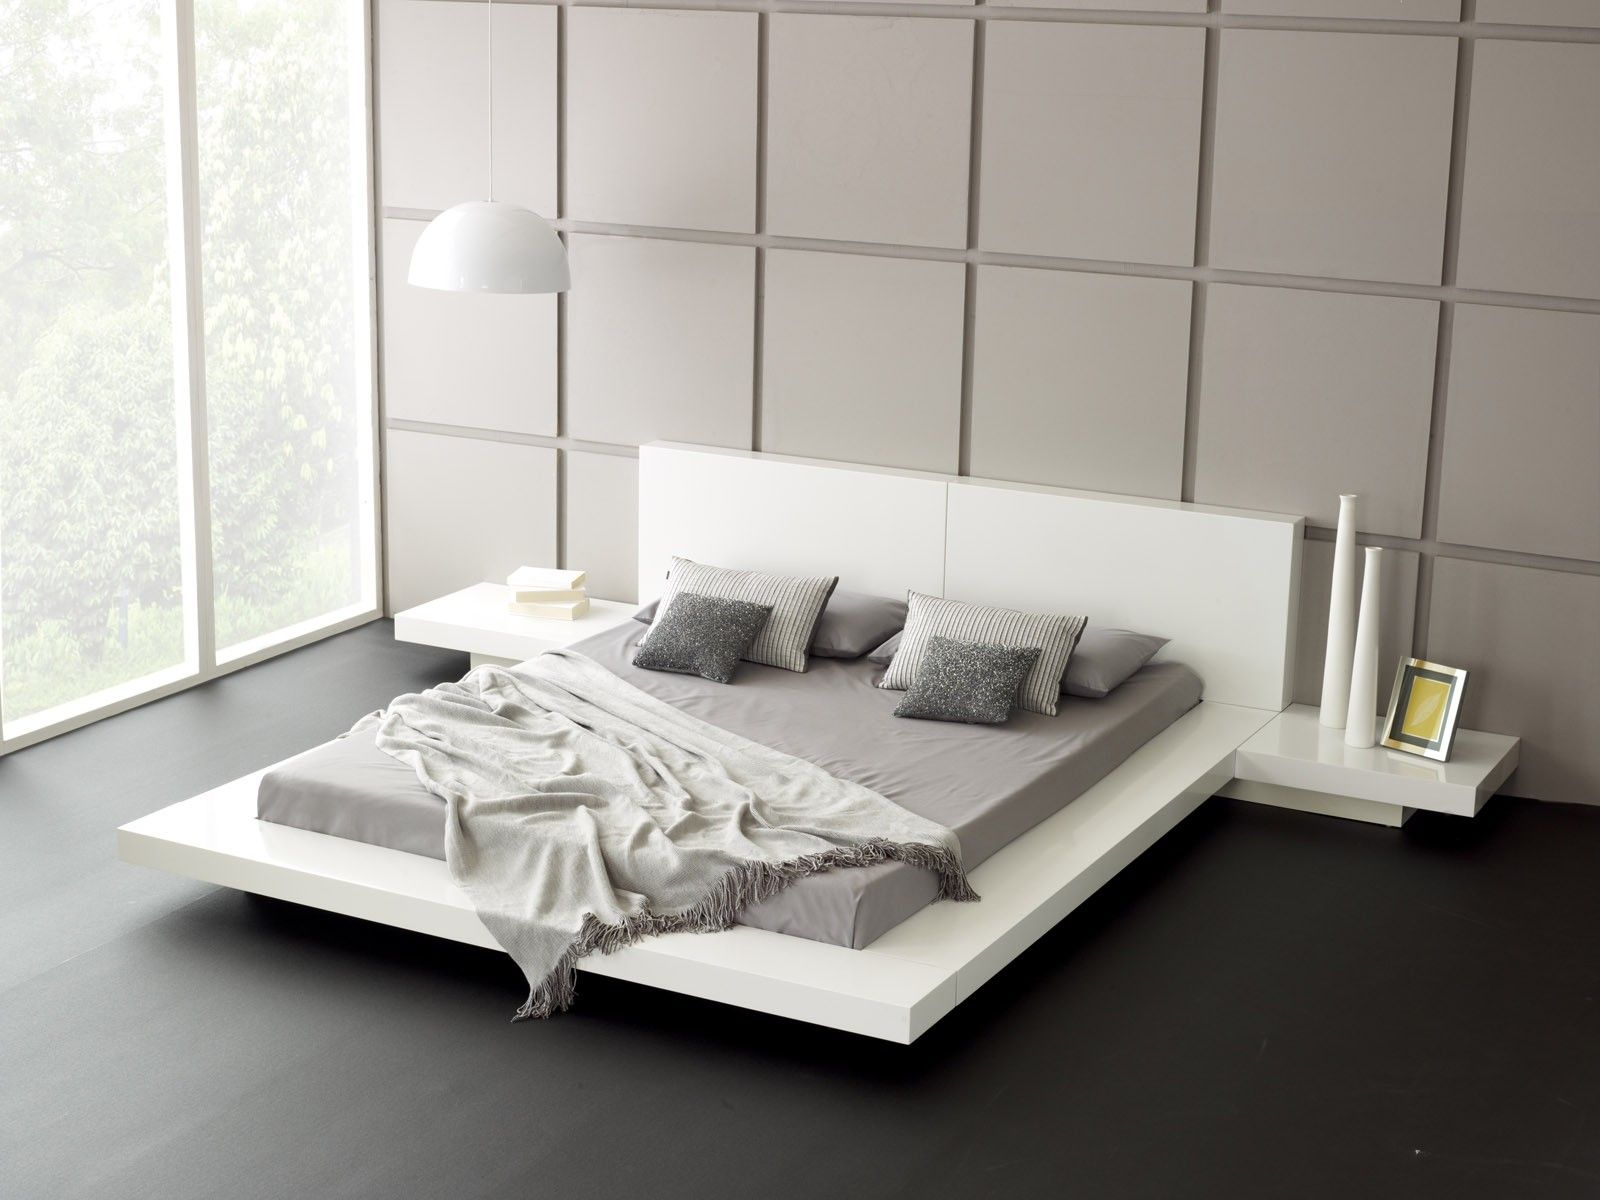 Design Bed white and grey bedroom ideas – transforming your boring room into